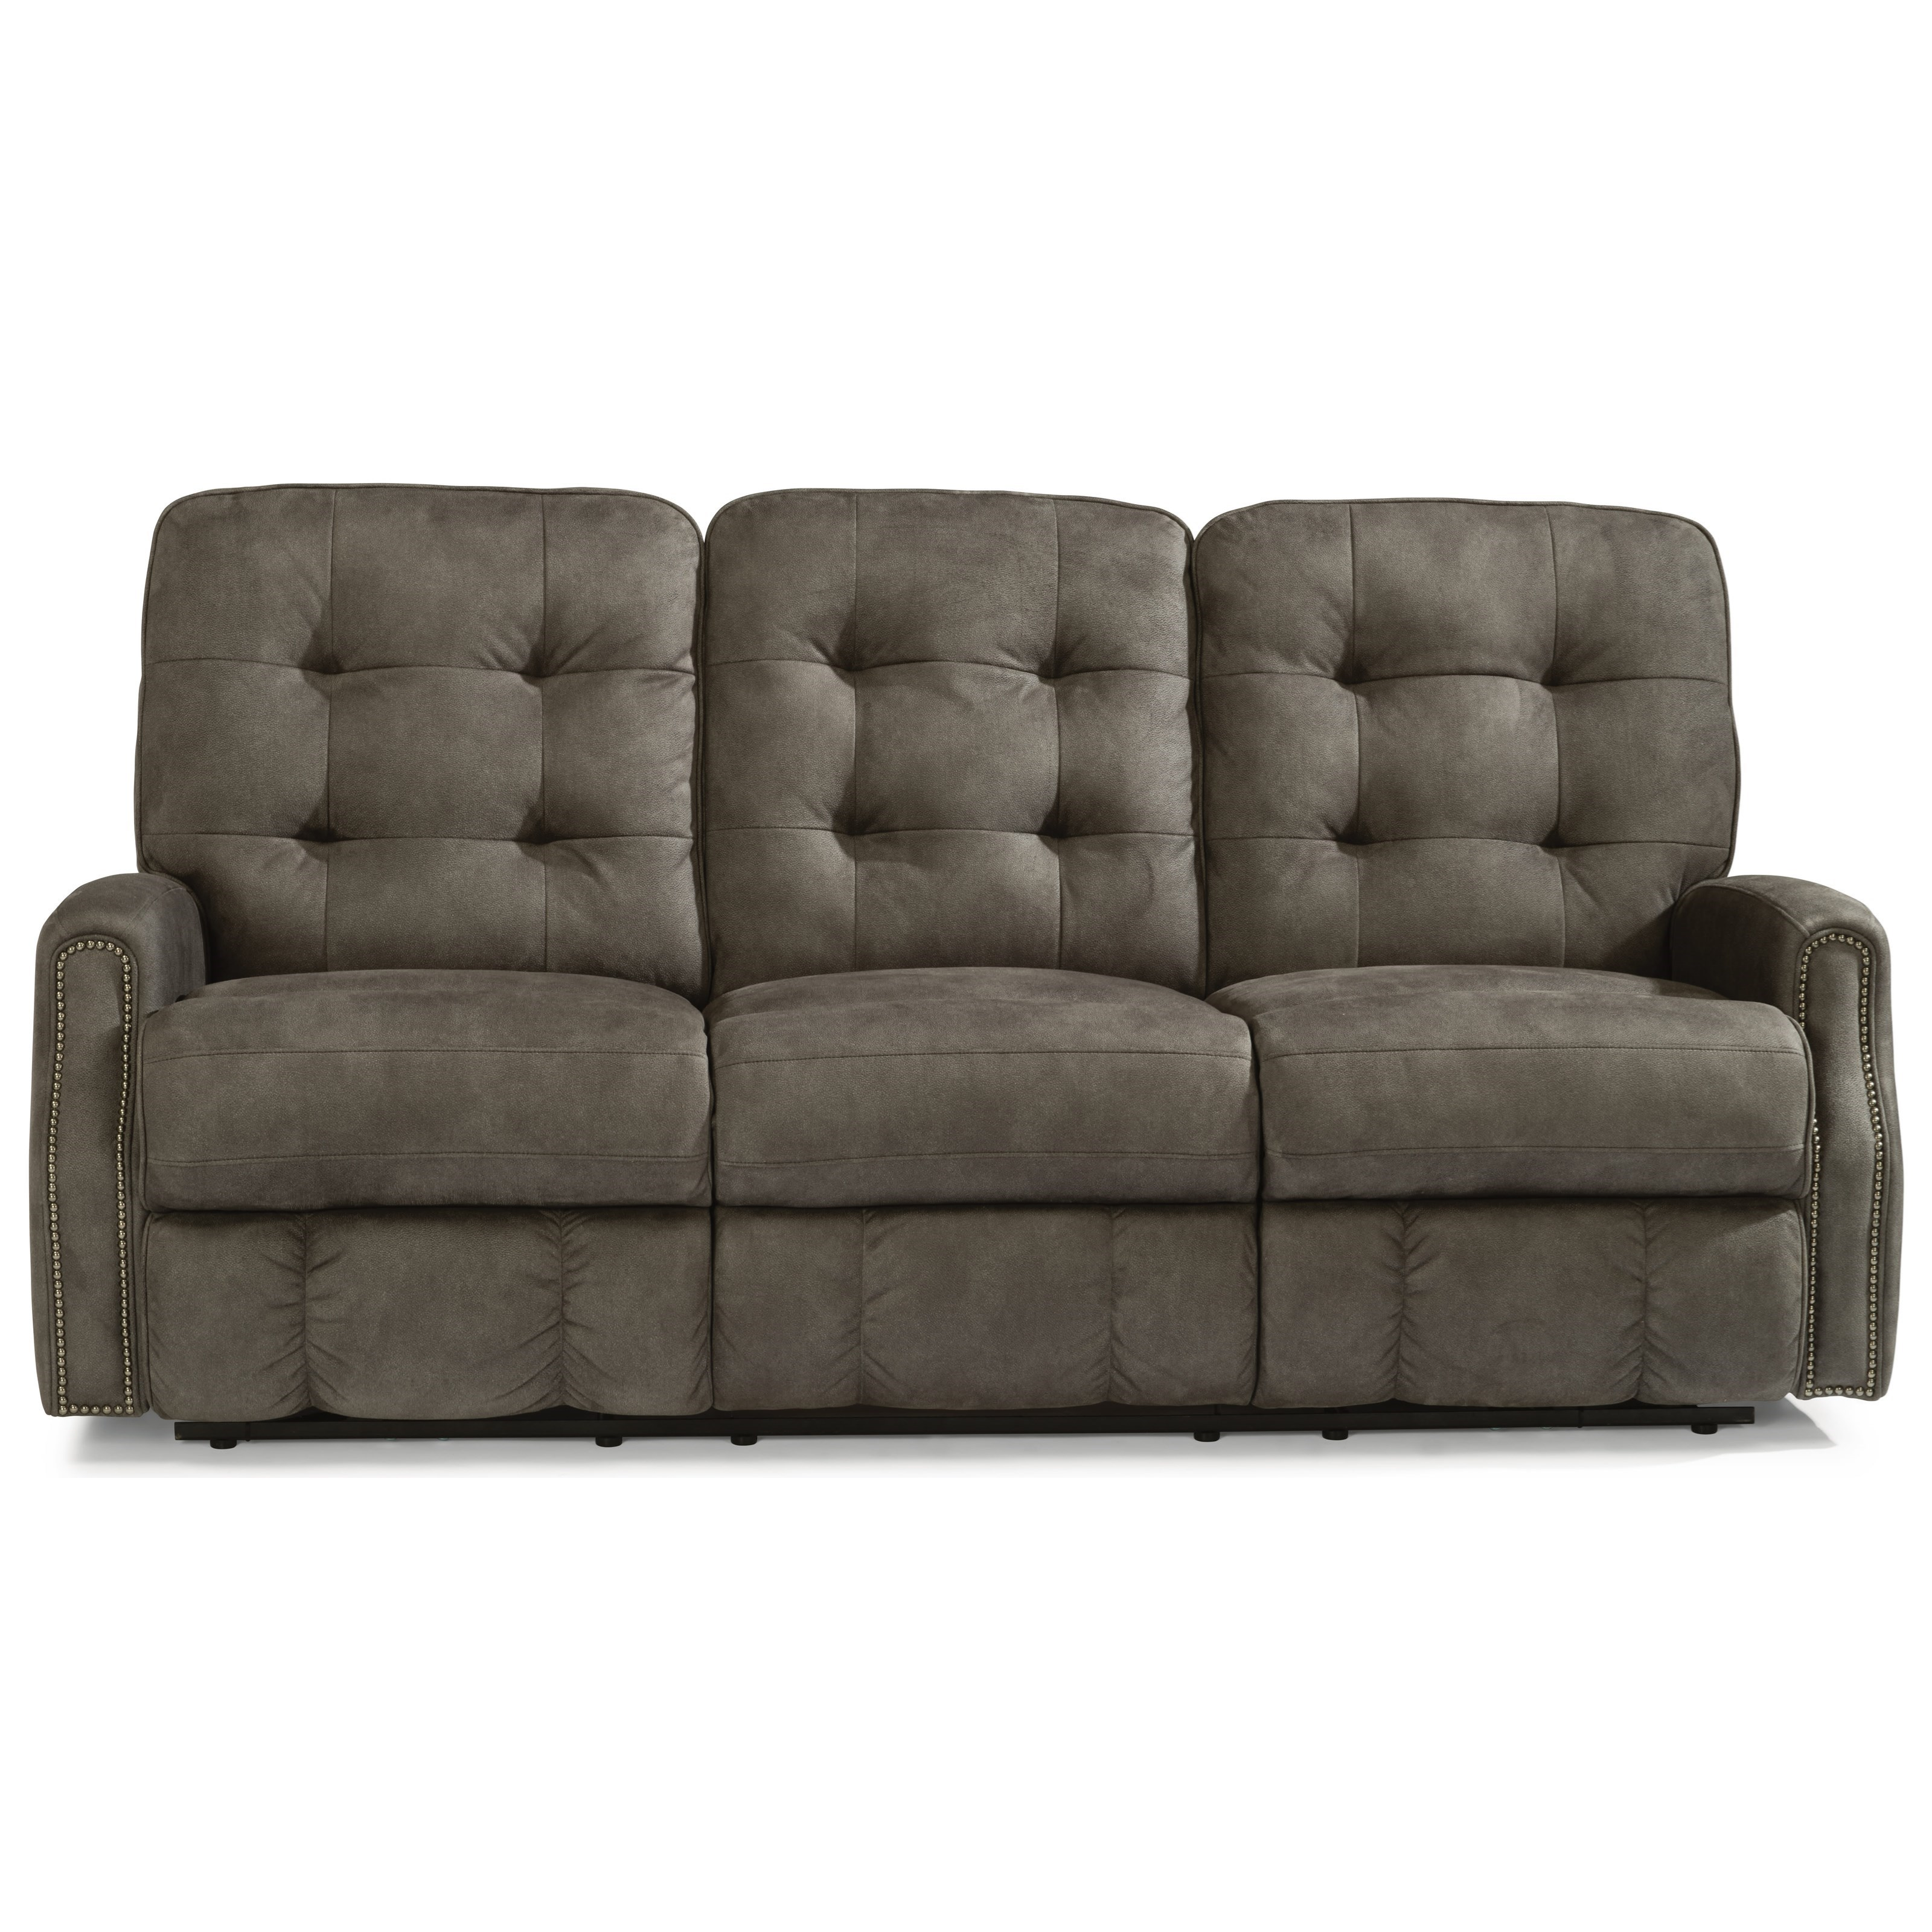 Flexsteel Sofa Locations